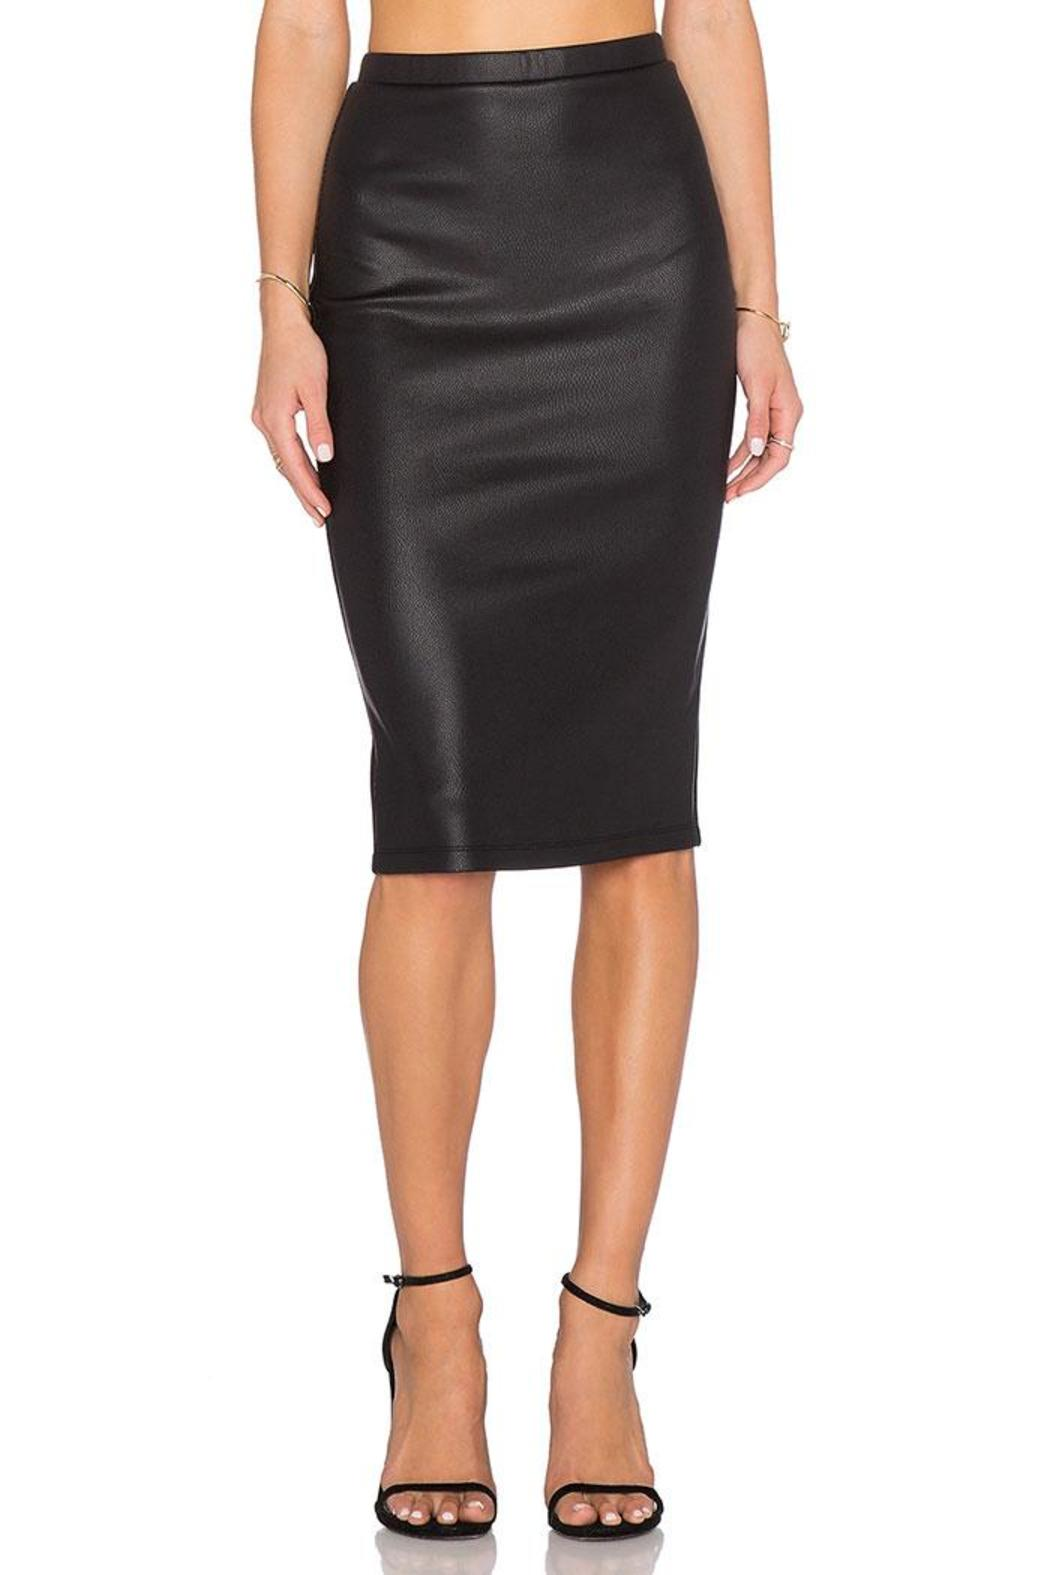 Jack by BB Dakota Kelan Snakeskin Skirt - Main Image